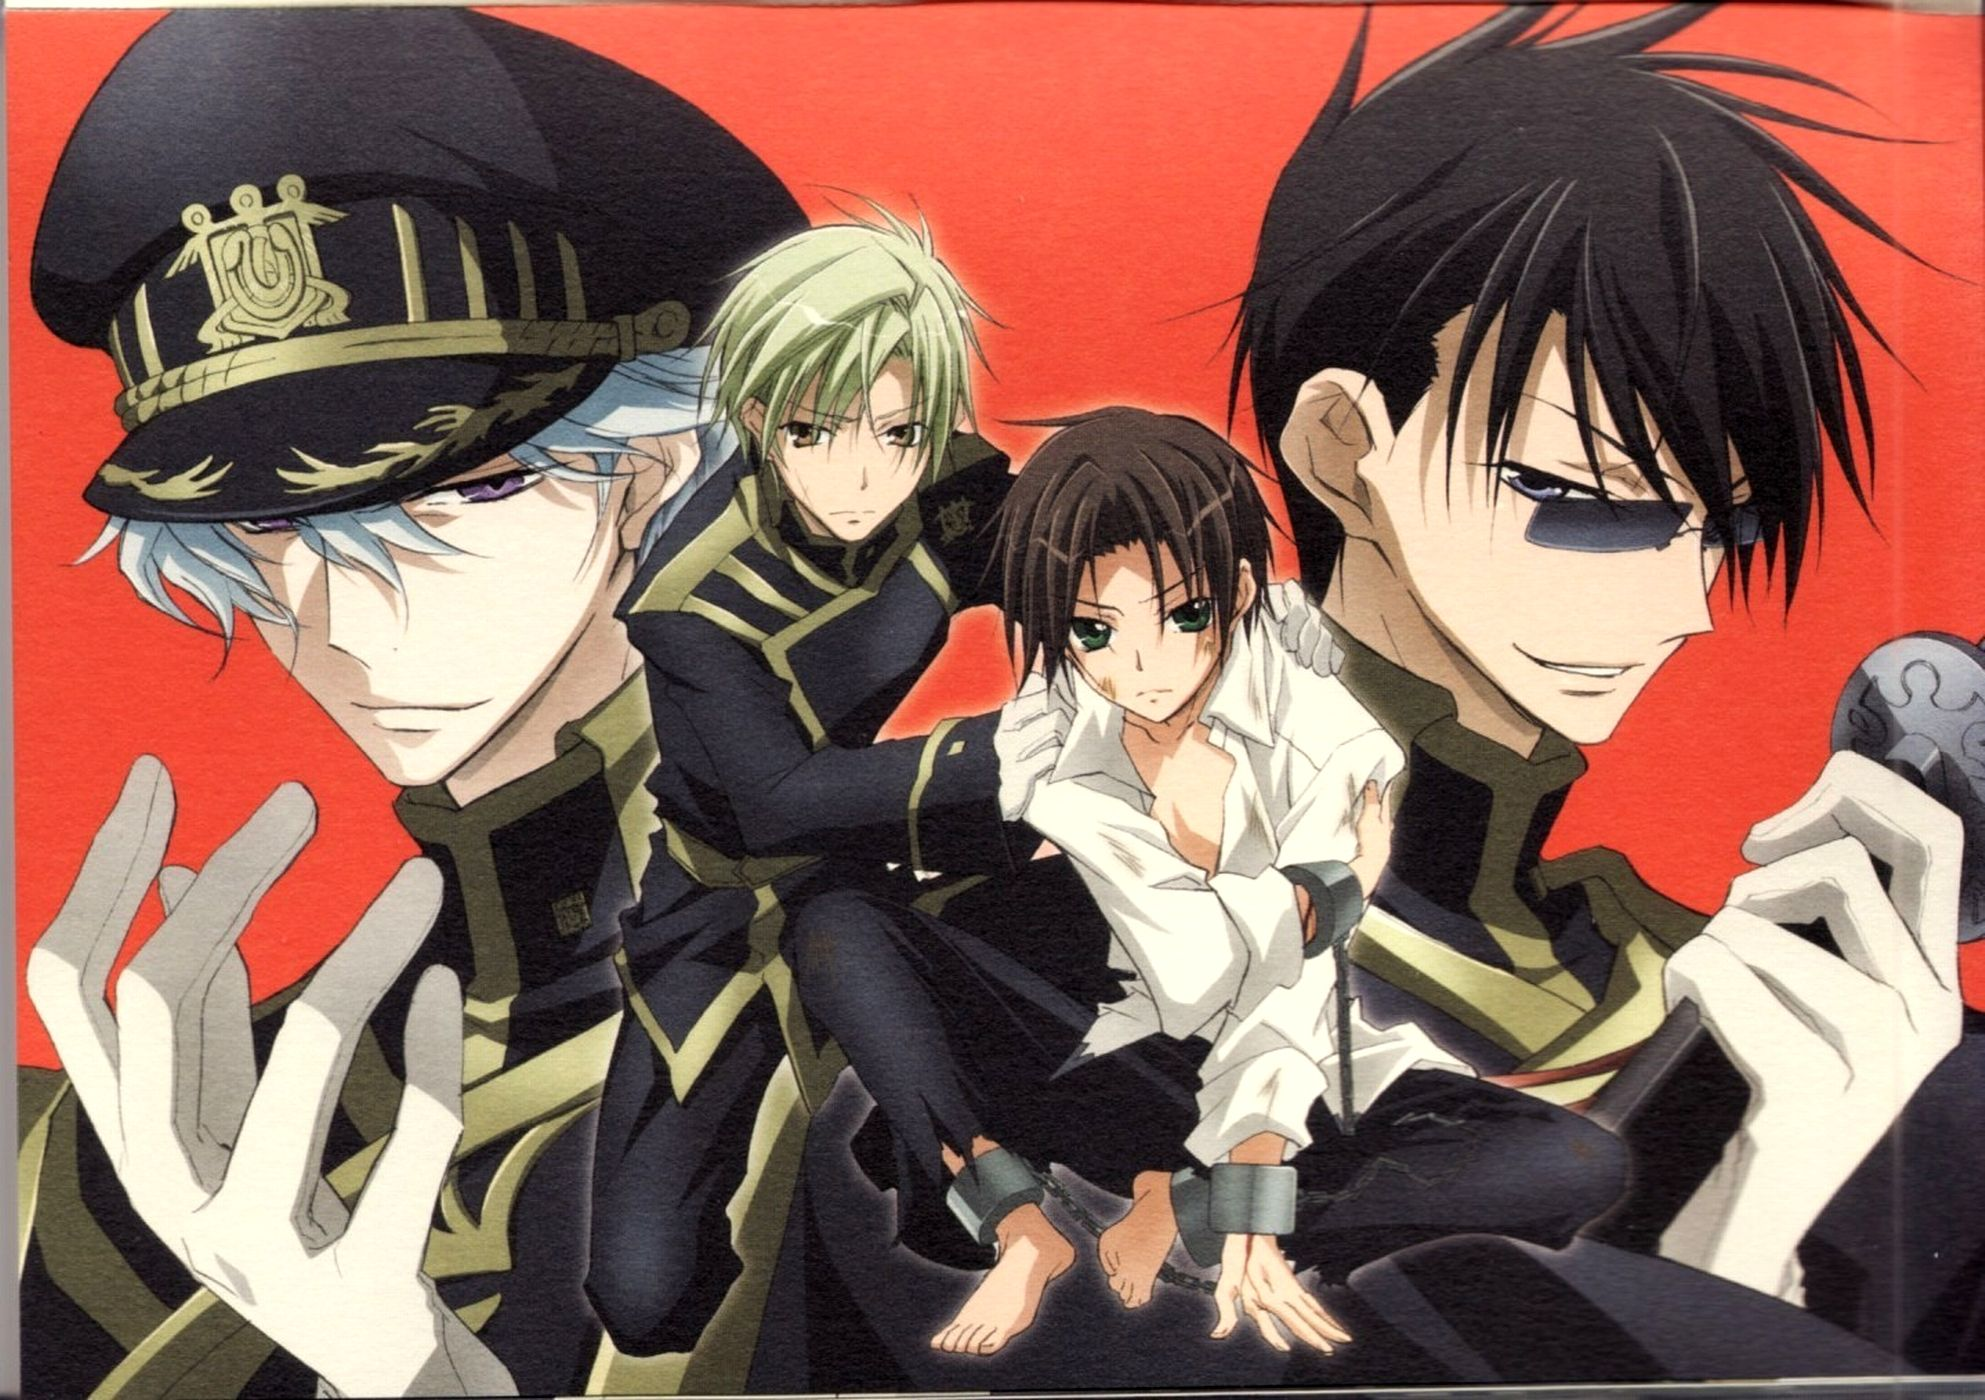 Tags: 07-ghost, Teito Klein, Mikage (07-ghost), Hyuuga (07-ghost), Ayanami (07-ghost)